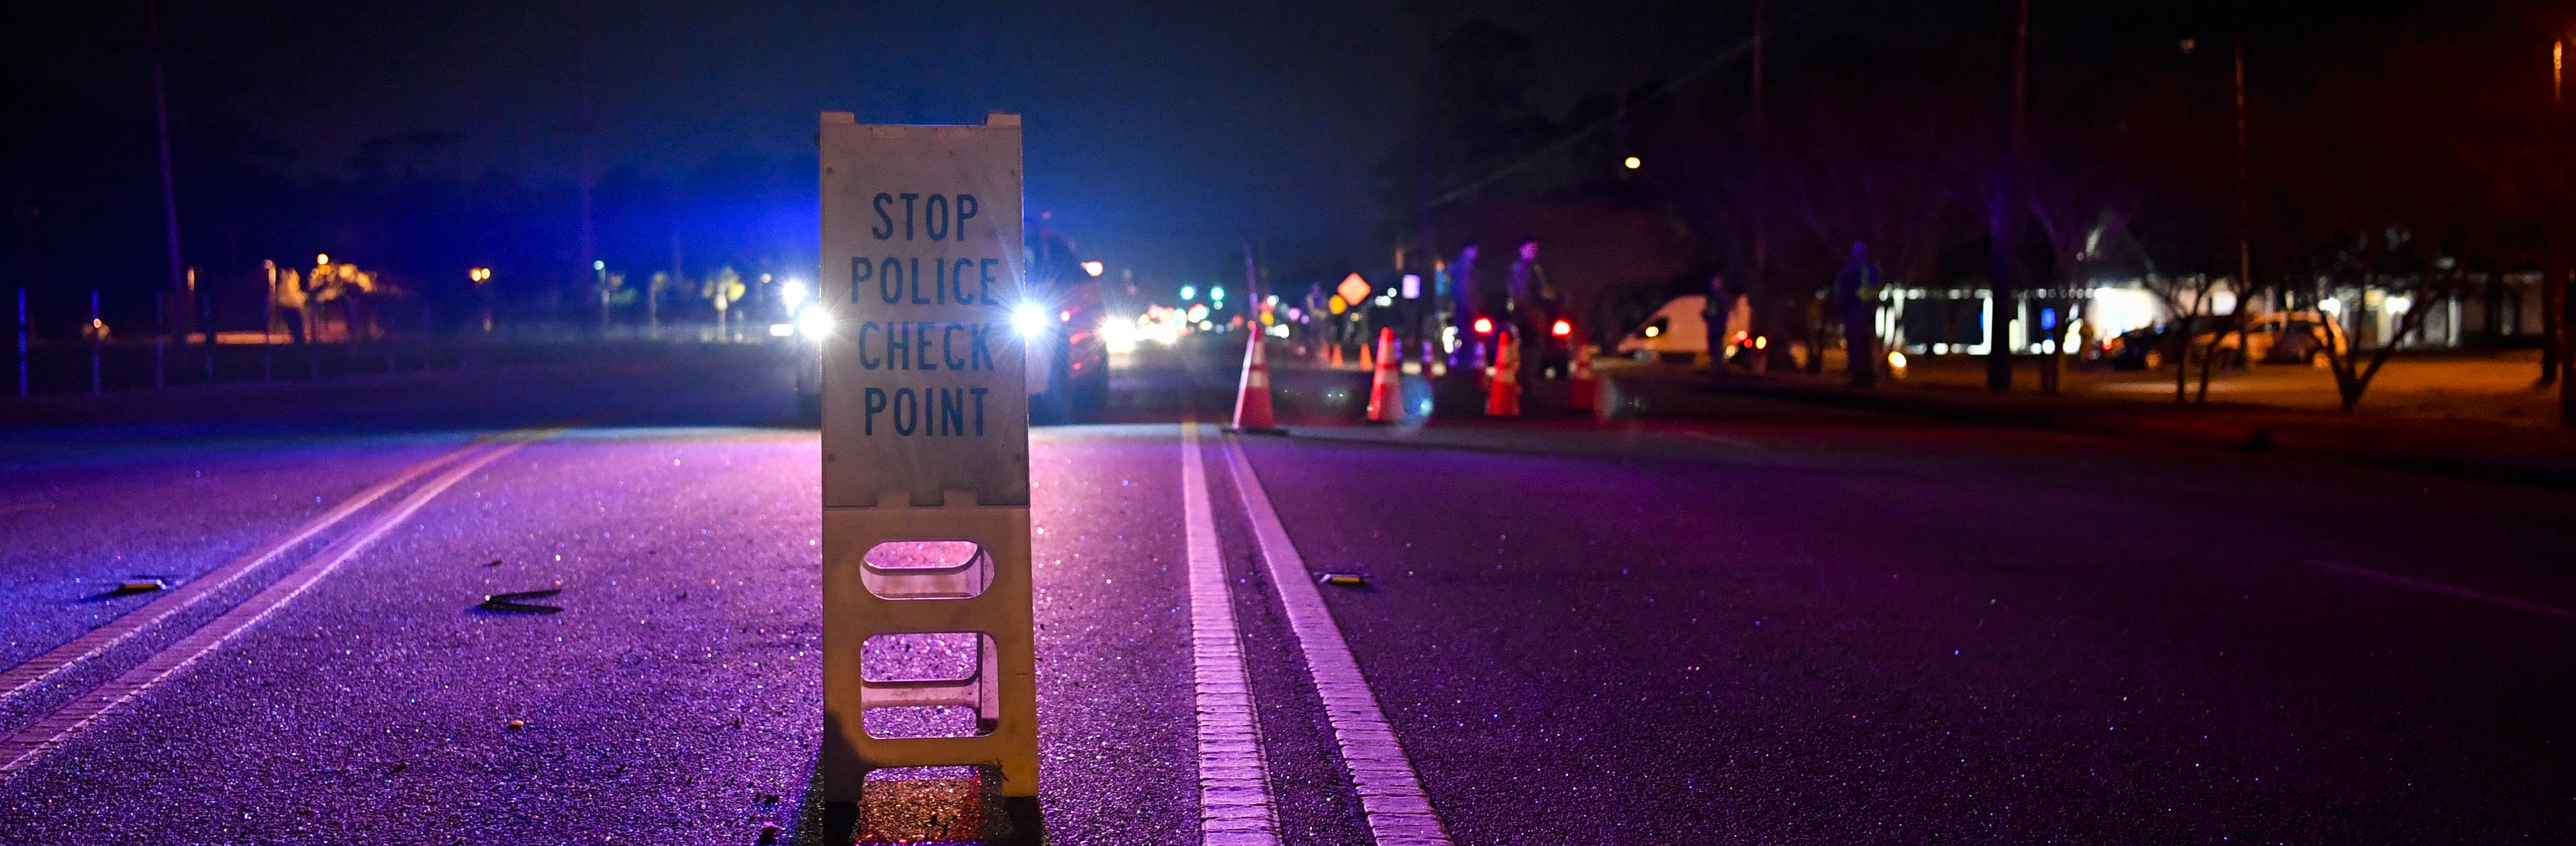 Members of the 628th Security Forces Squadron set up a DUI checkpoint Feb. 3, 2019, at Joint Base Charleston, S.C. Patrolmen checked for IDs, insurance and registration, as well as making sure there were no impaired drivers.